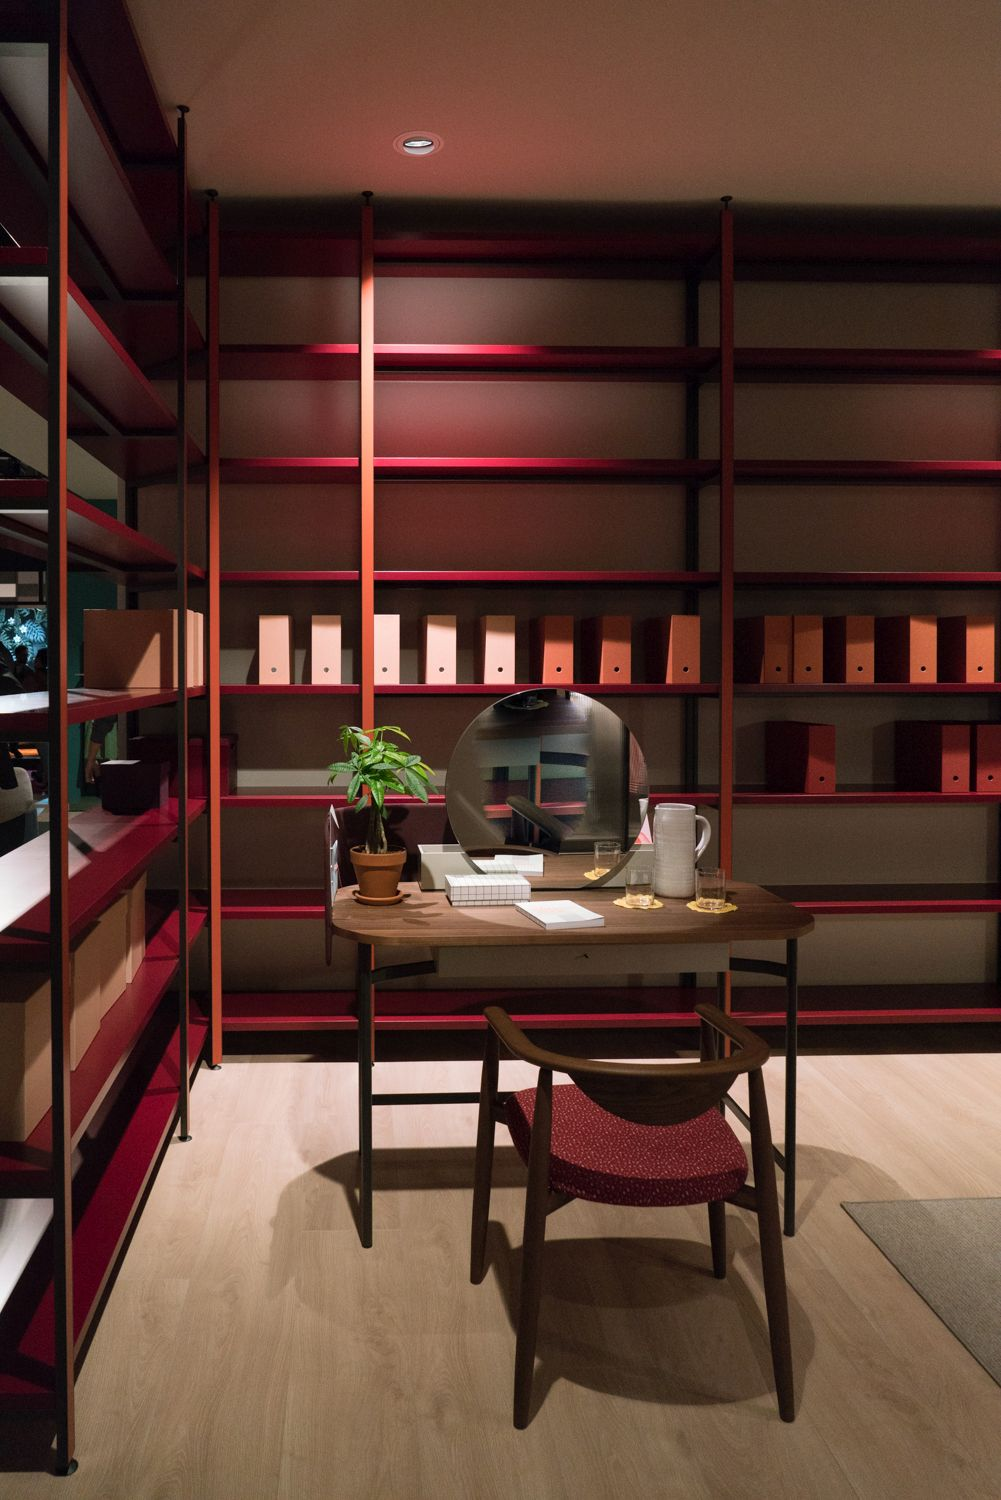 Of course, workspaces can definitely use shelves in their interior designs as well as there are many things which can be organized this way